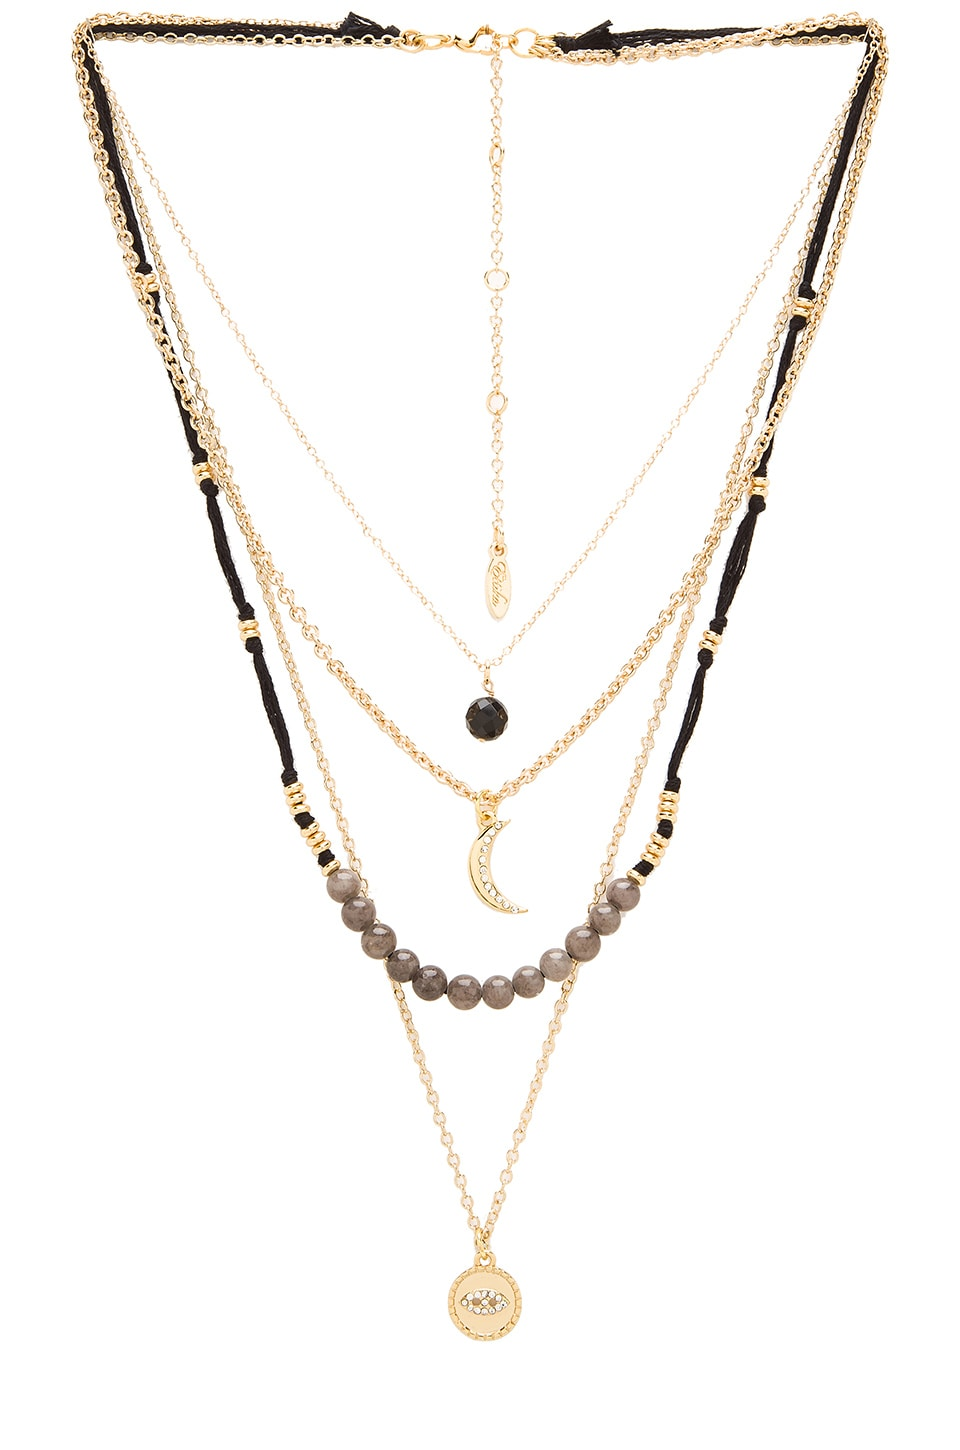 Ettika Layered Beaded Charm Necklace in Gold & Black